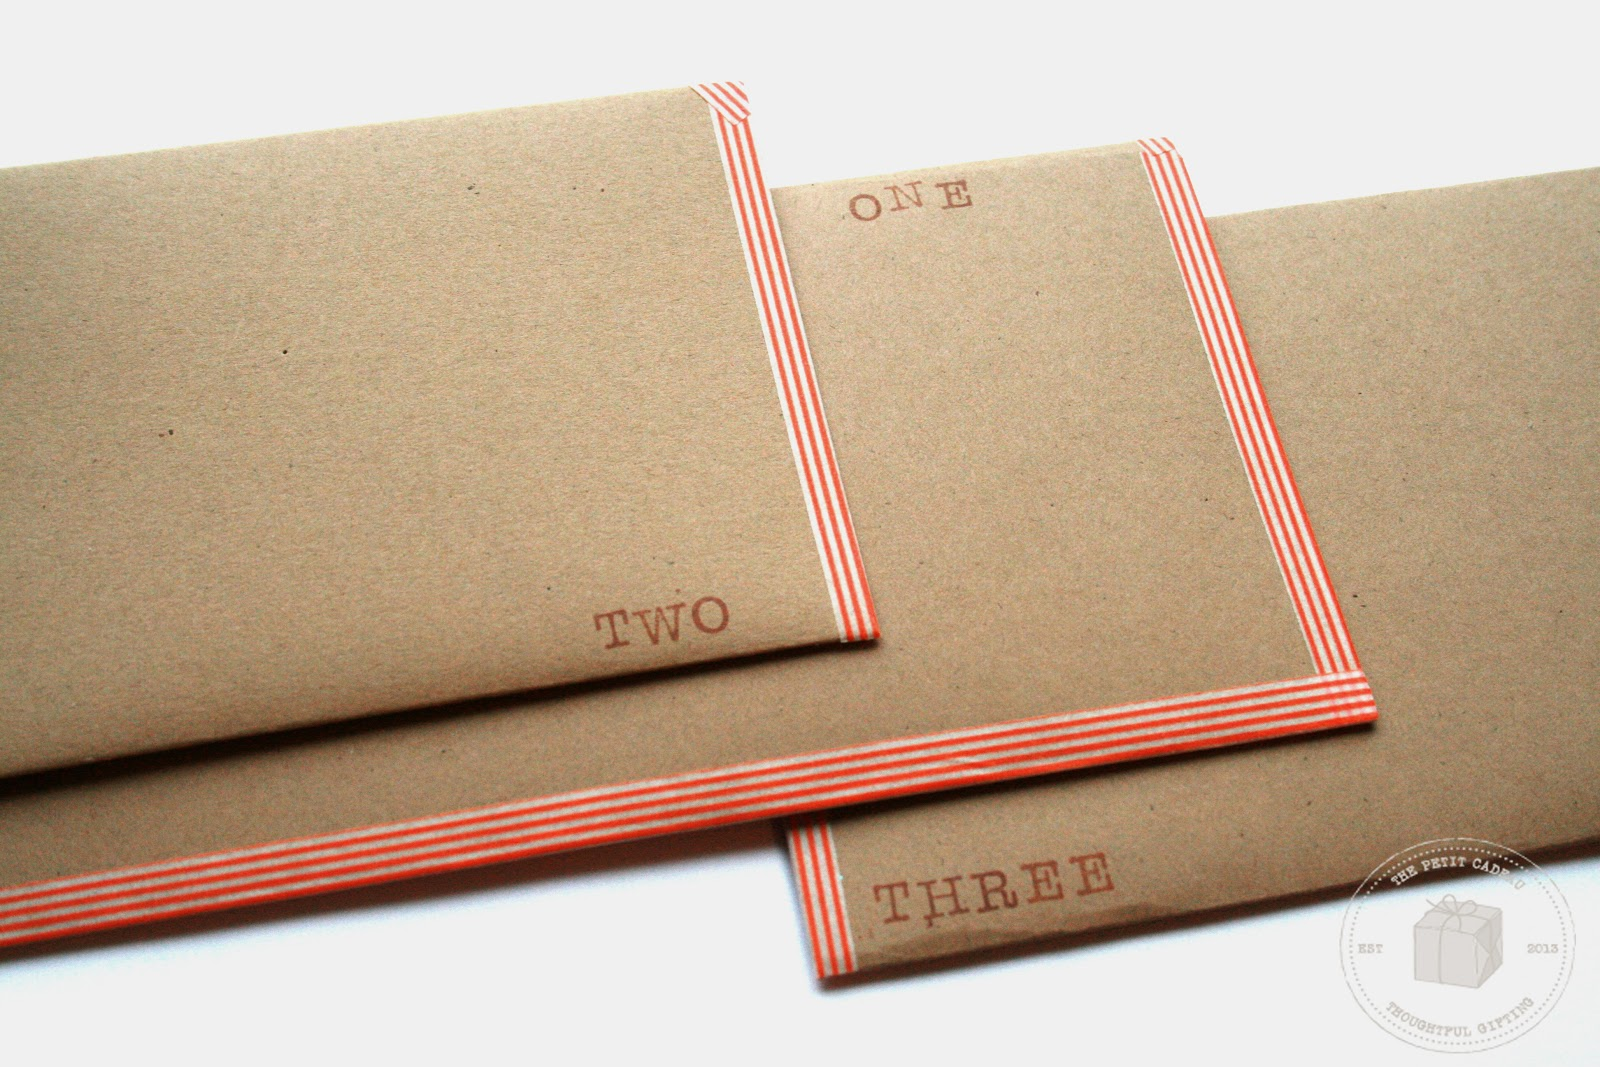 the petit cadeau surprise envelopes easy diy gifting include some instructions